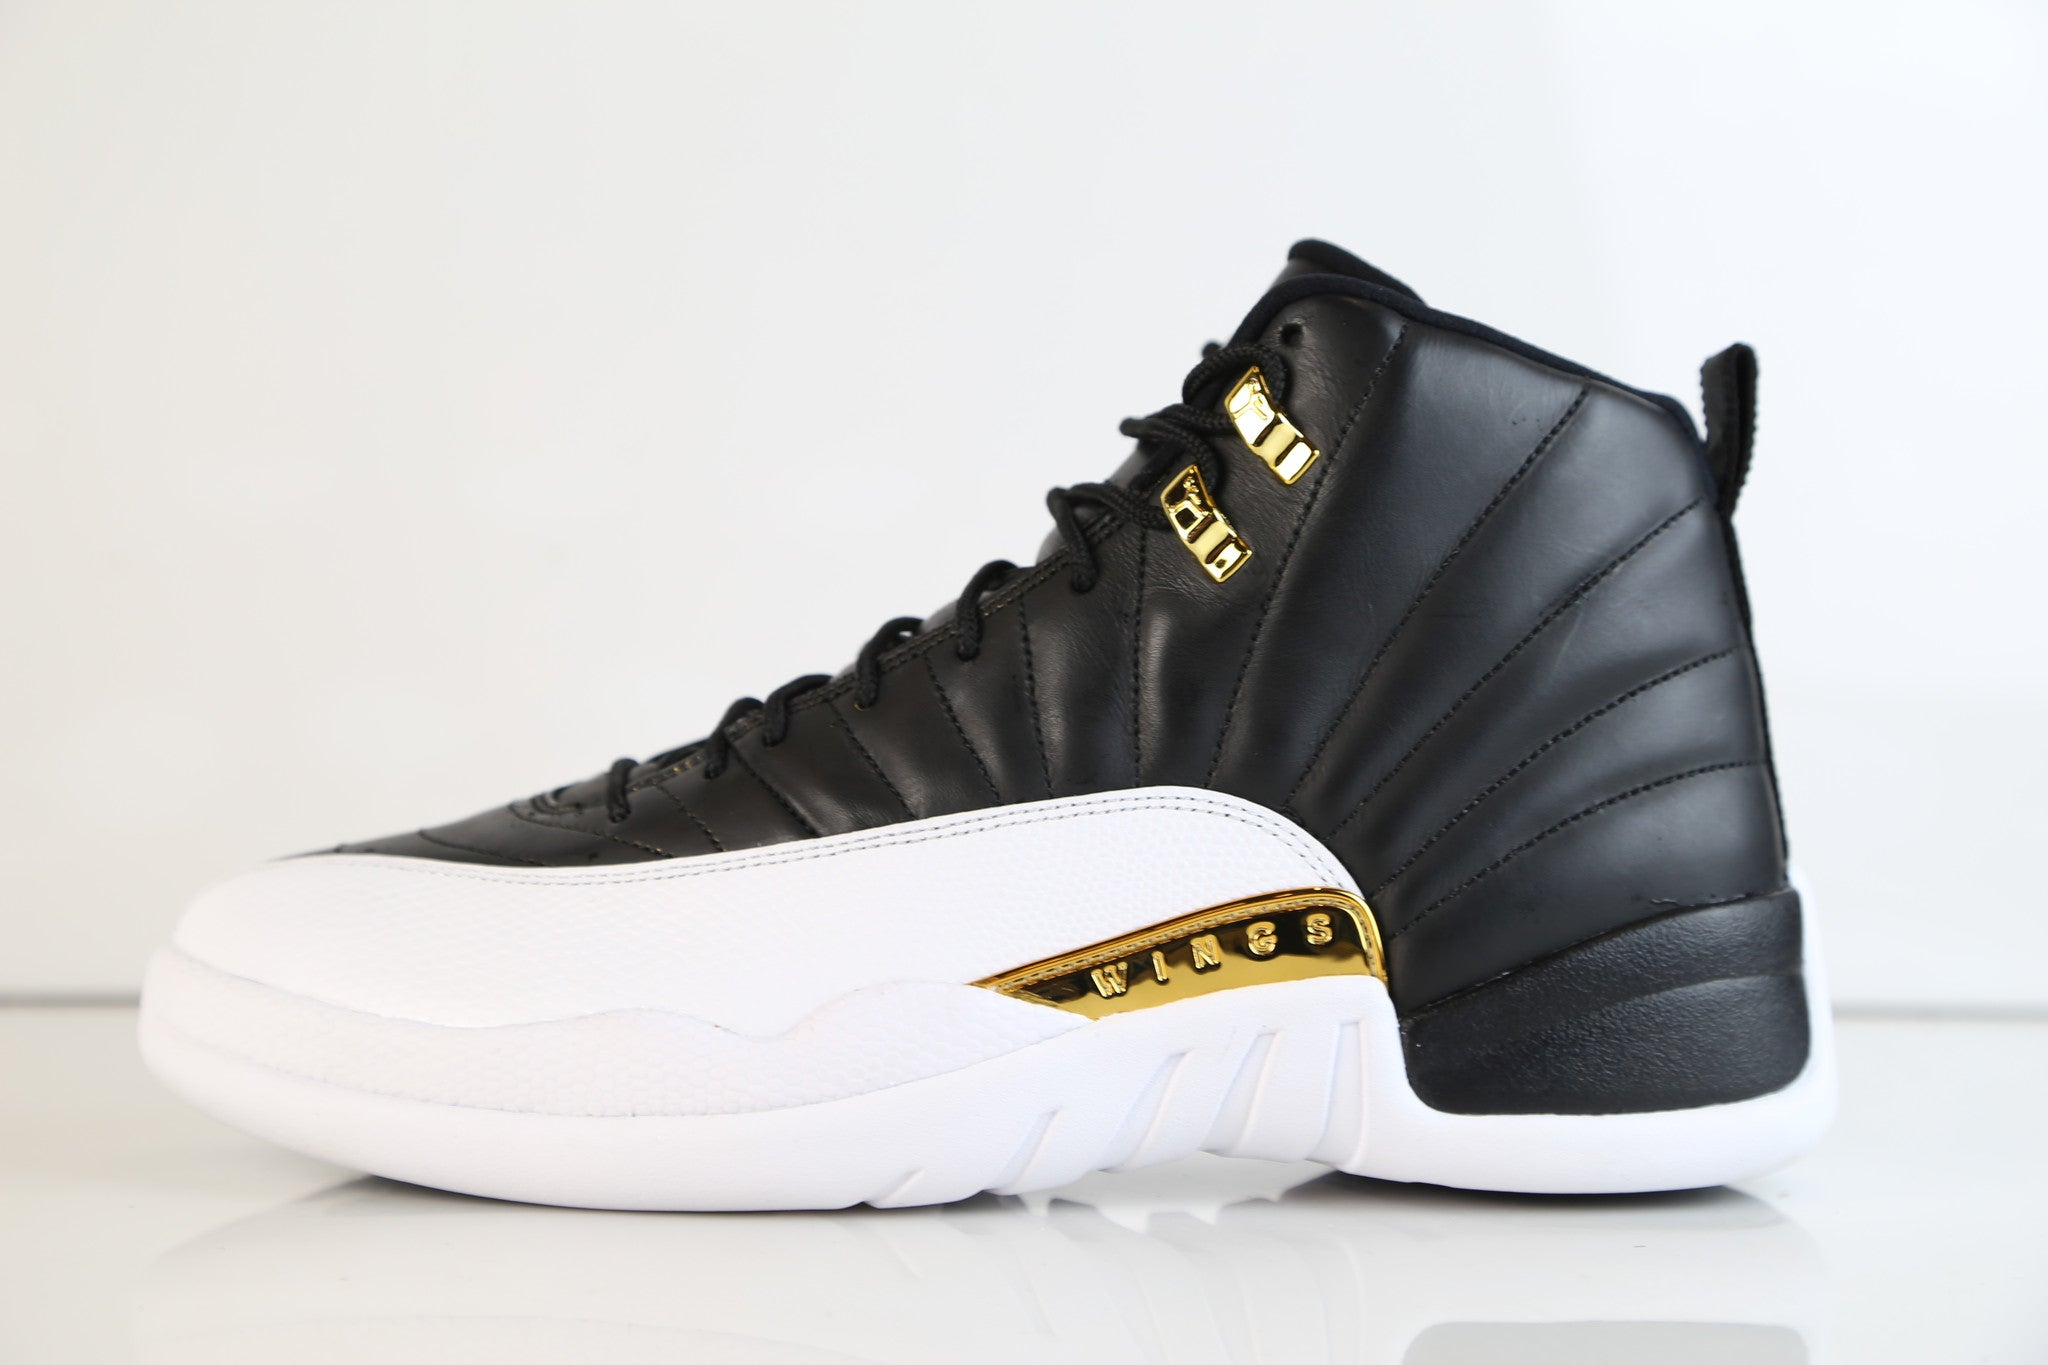 7db66691143d Nike Air Jordan Retro 12 WINGS Black Metallic Gold 848692-033 ...